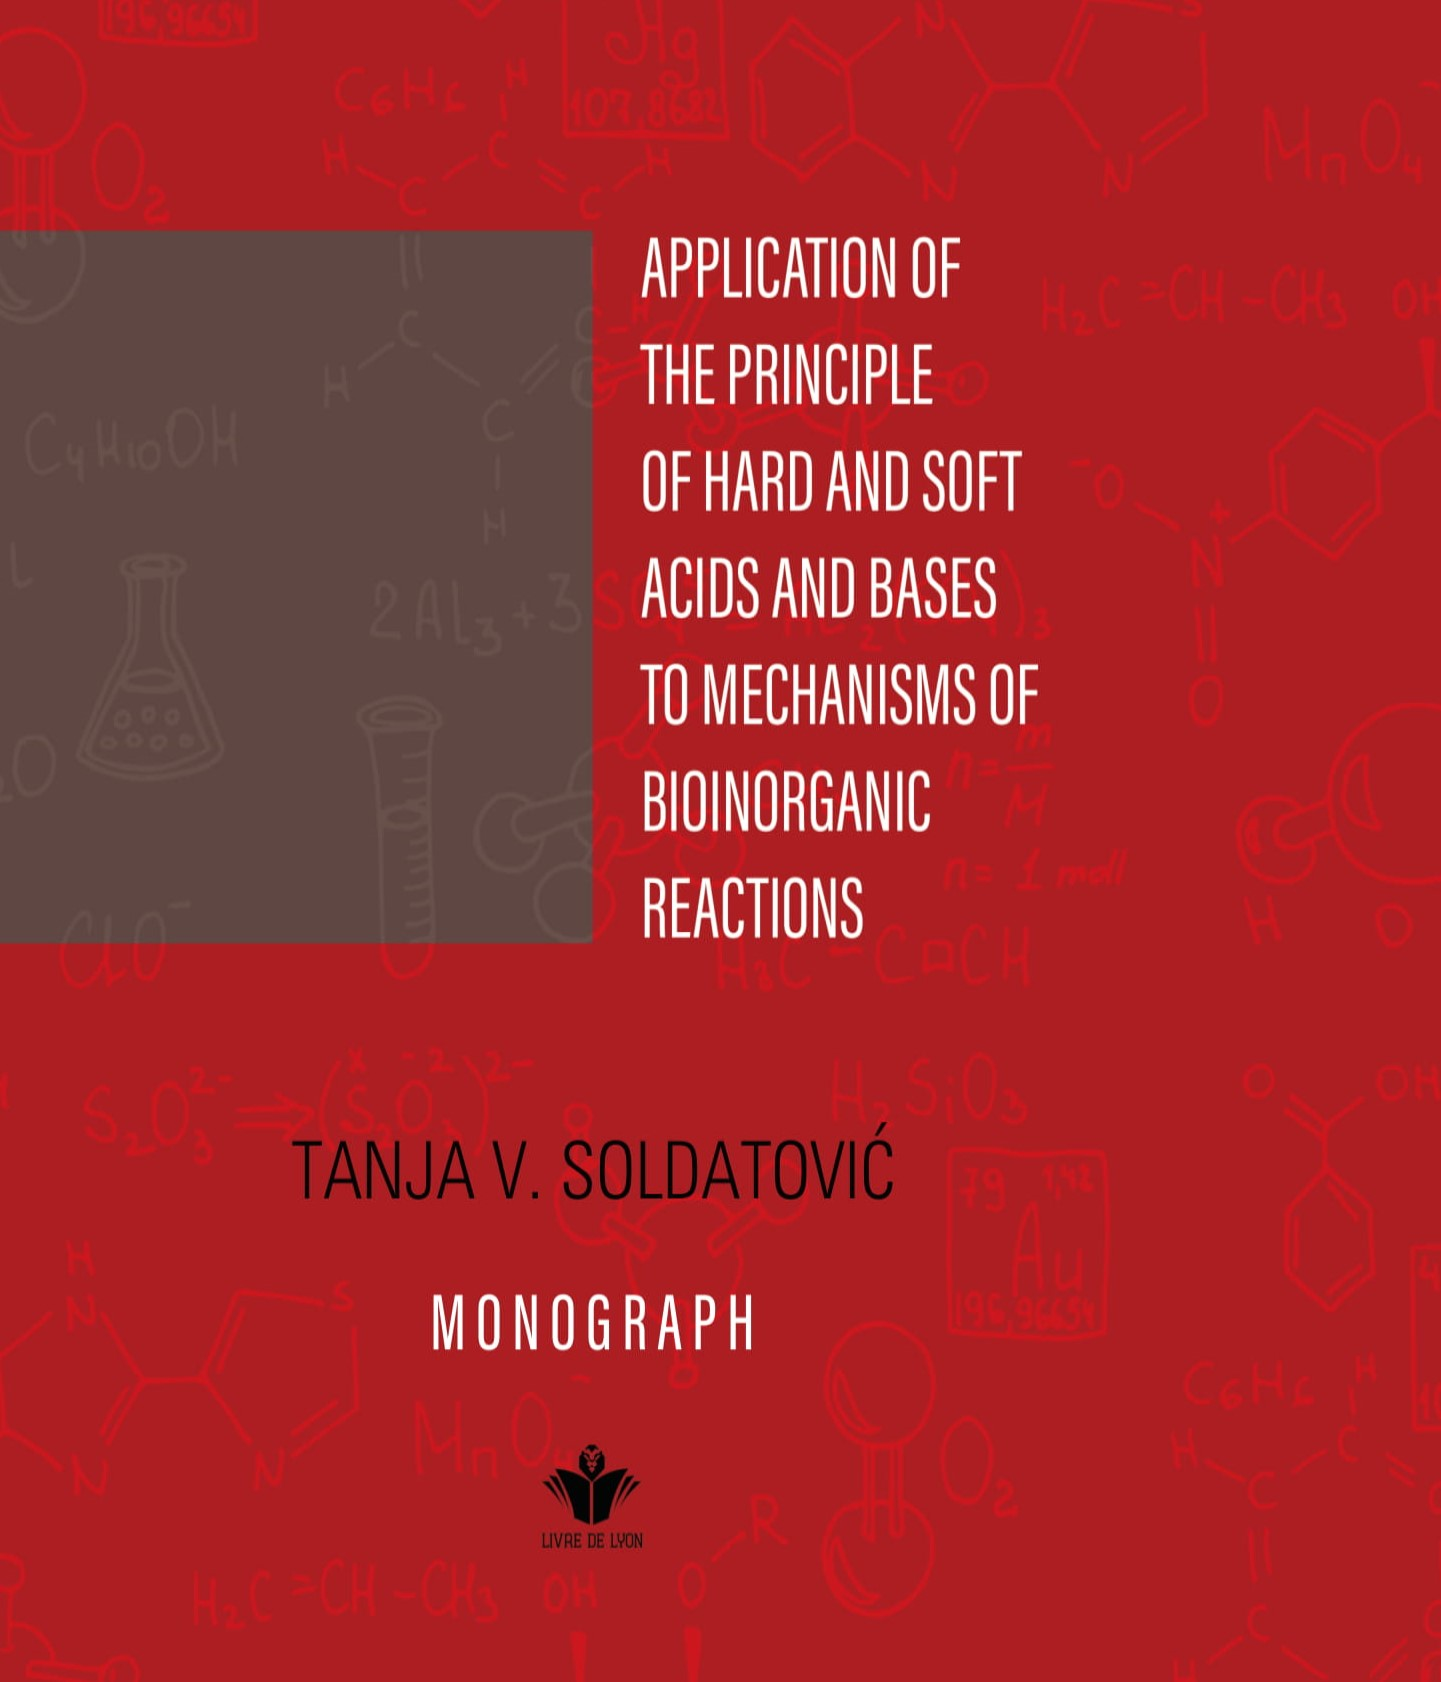 Application of The Principle of Hard and Soft Acids and Bases to Mechanisms of Bioinorganic Reaction